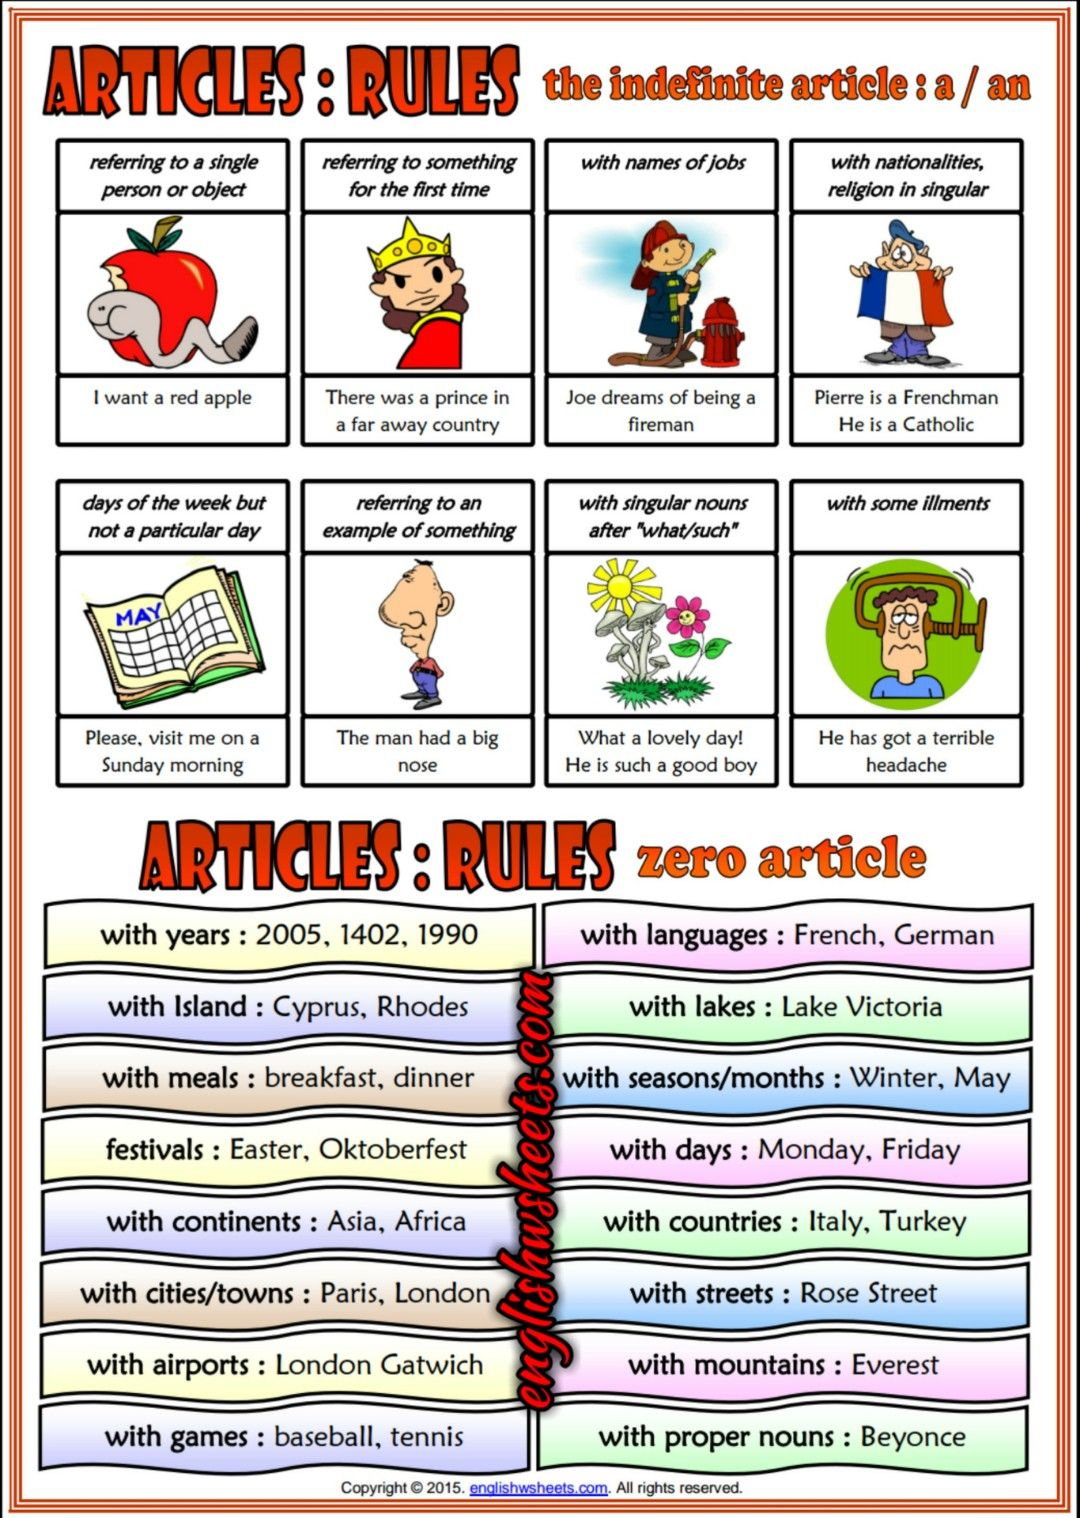 The Indefinite And Zero Article Esl Classroom Poster For Kids Teach English To Kids Classroom Posters Writing A Term Paper [ 1518 x 1080 Pixel ]